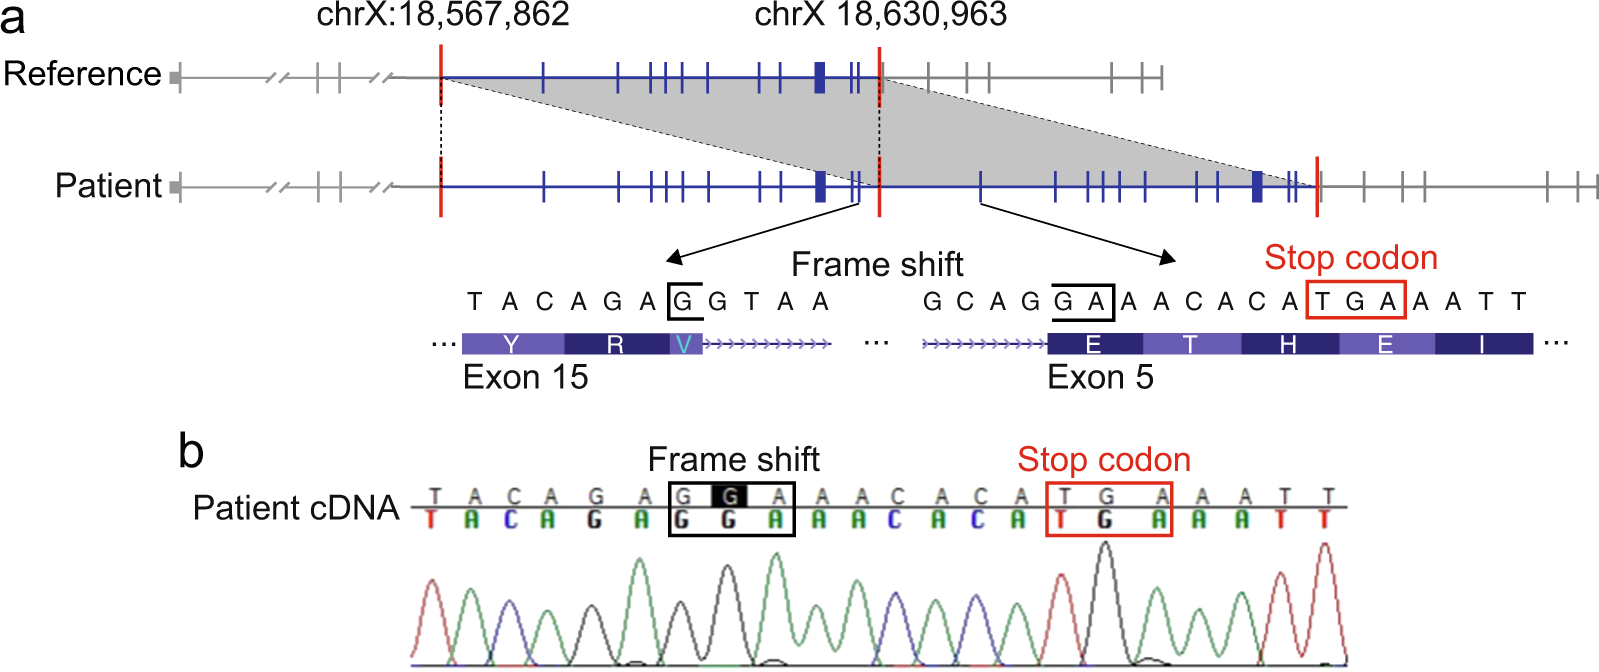 Whole Genome Ysis For Effective Clinical Diagnosis And Gene Discovery In Early Infantile Epileptic Encephalopathy Npj Genomic Medicine